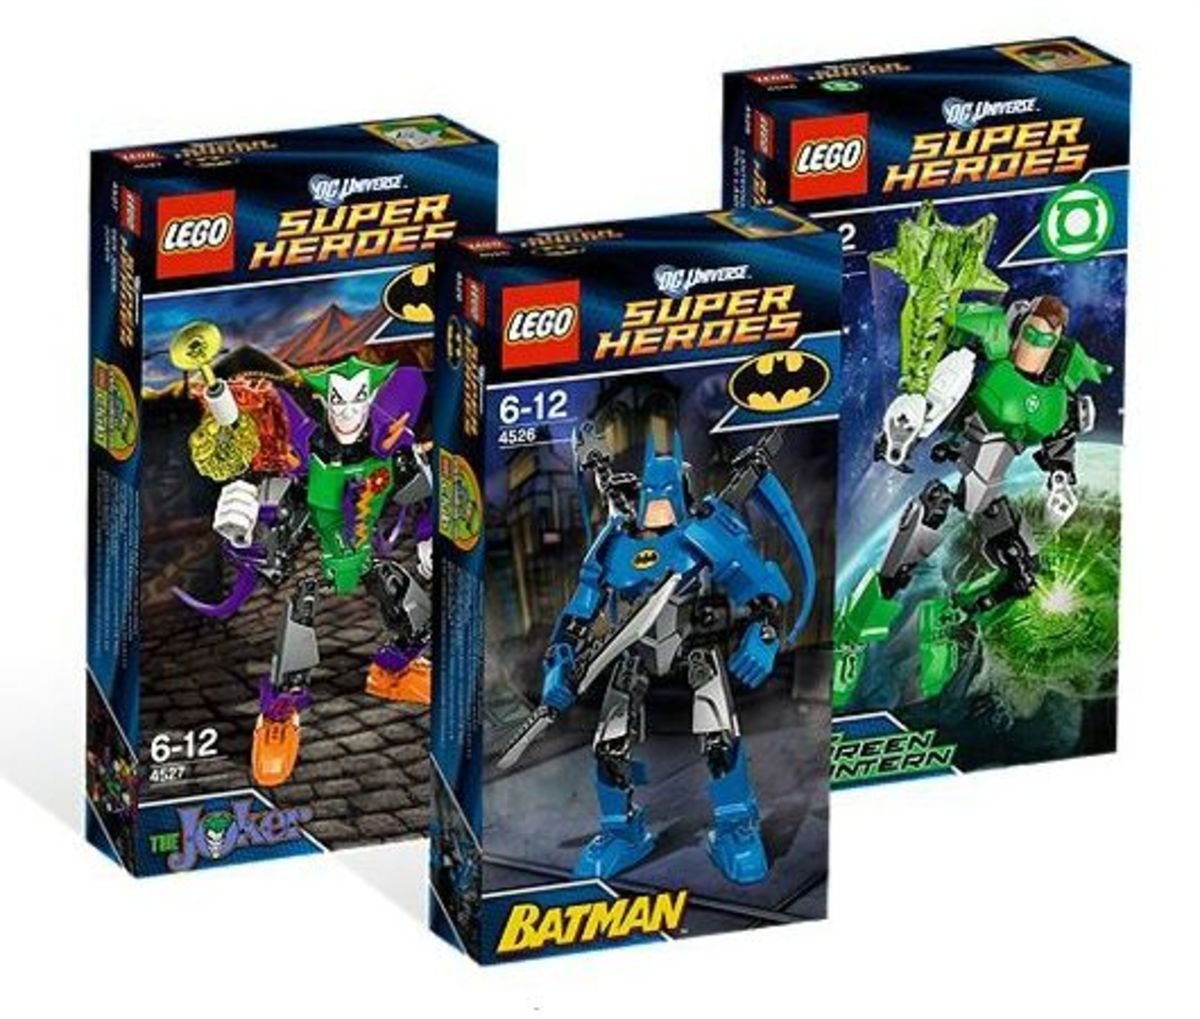 LEGO Super Heroes DC Universe Super Heroes Collection Boxes